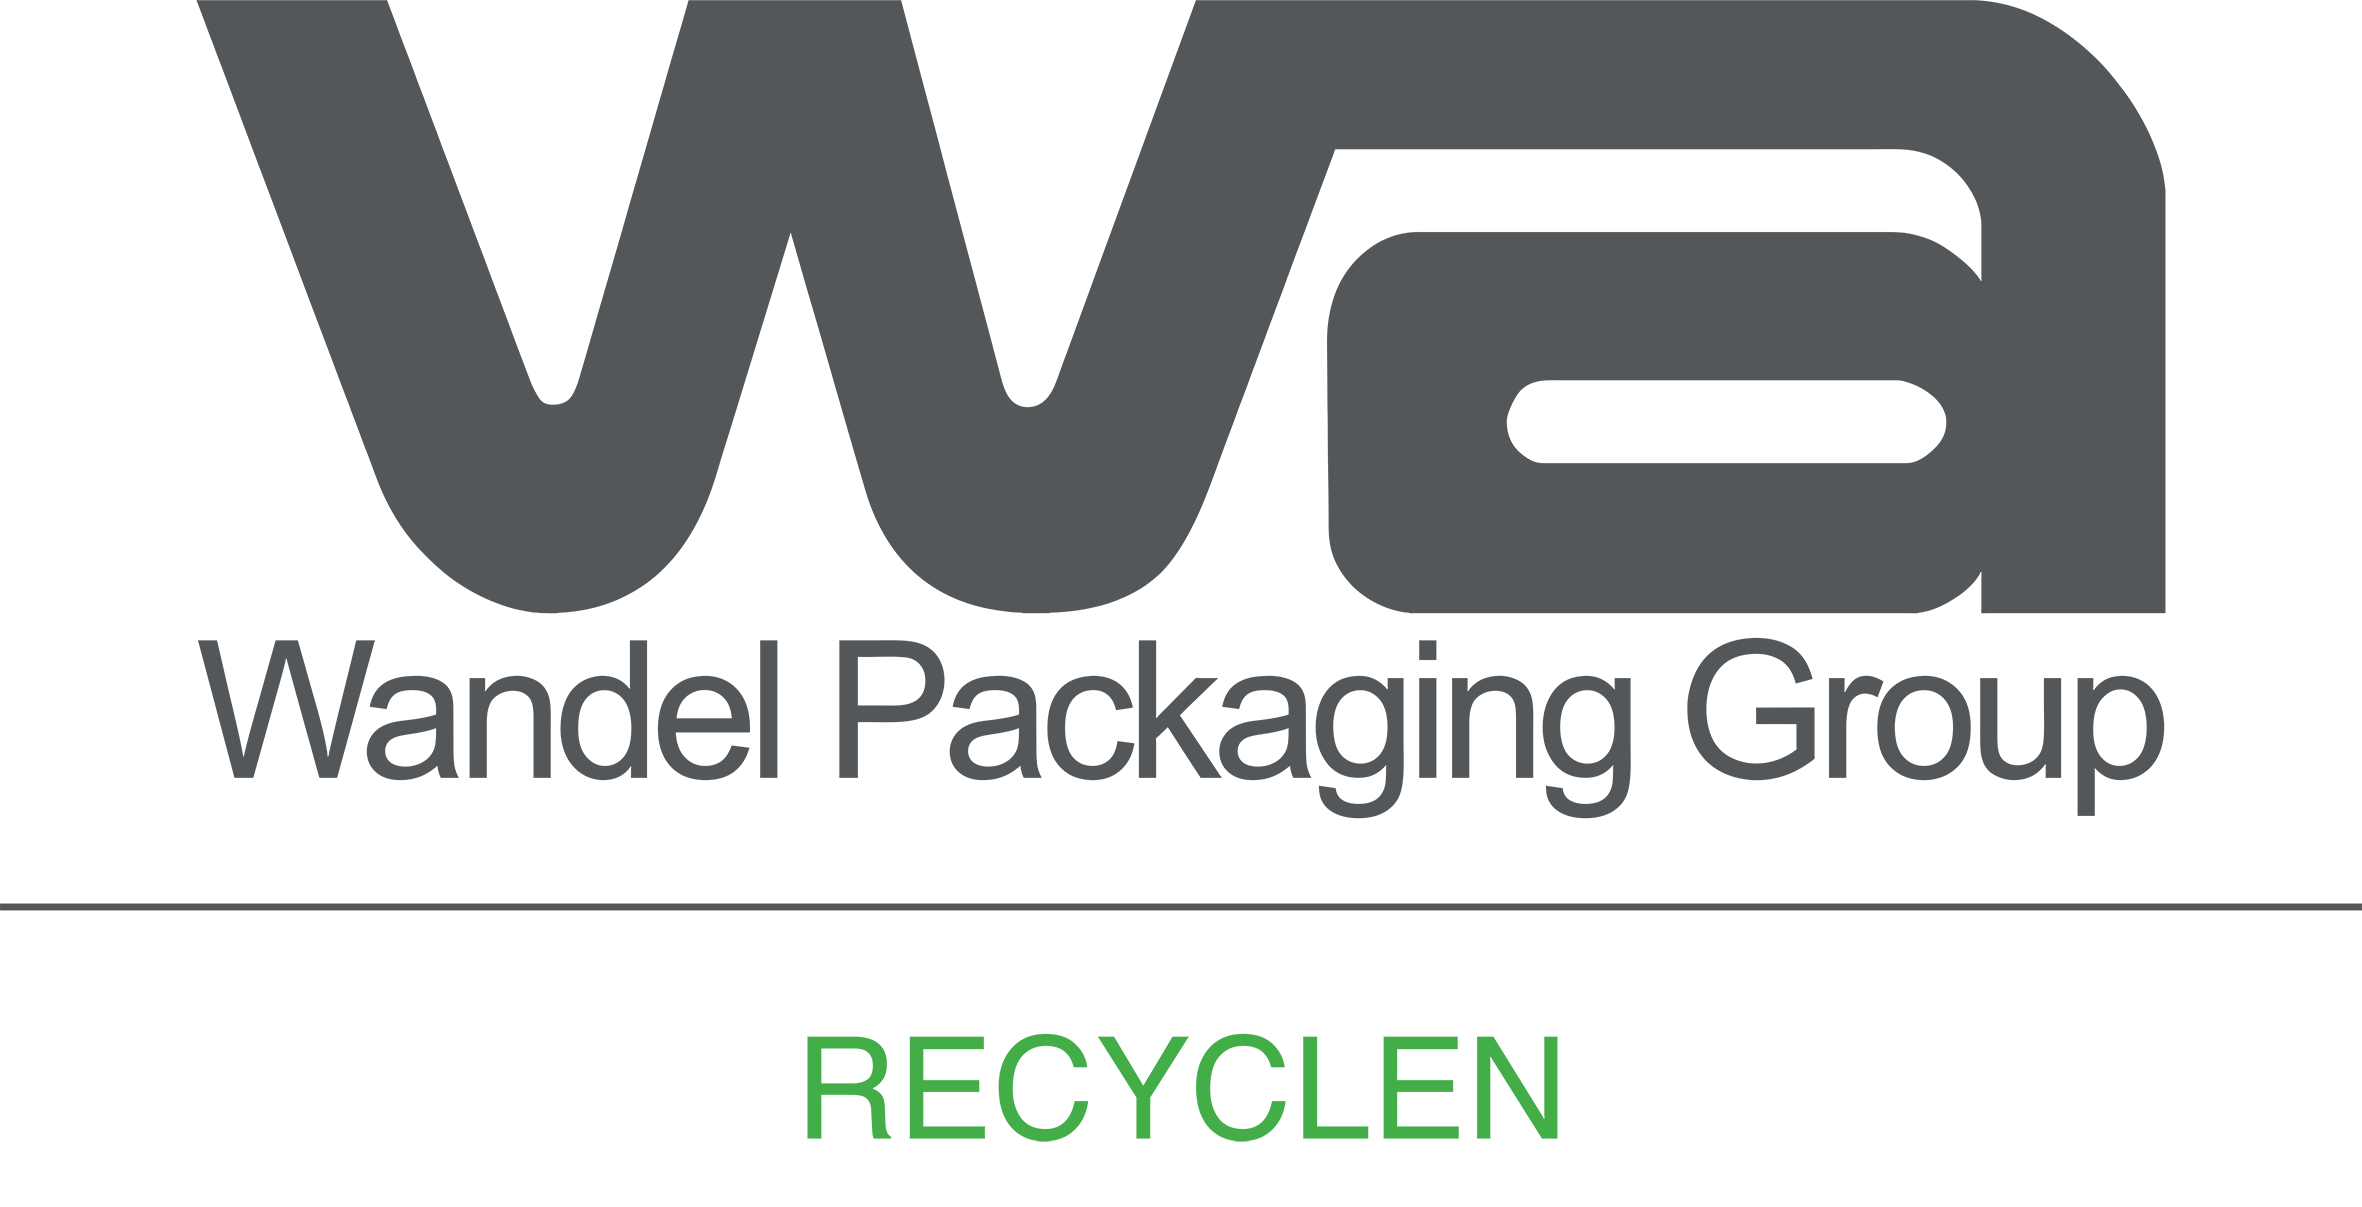 Wandel Packaging Group Recyclen GmbH